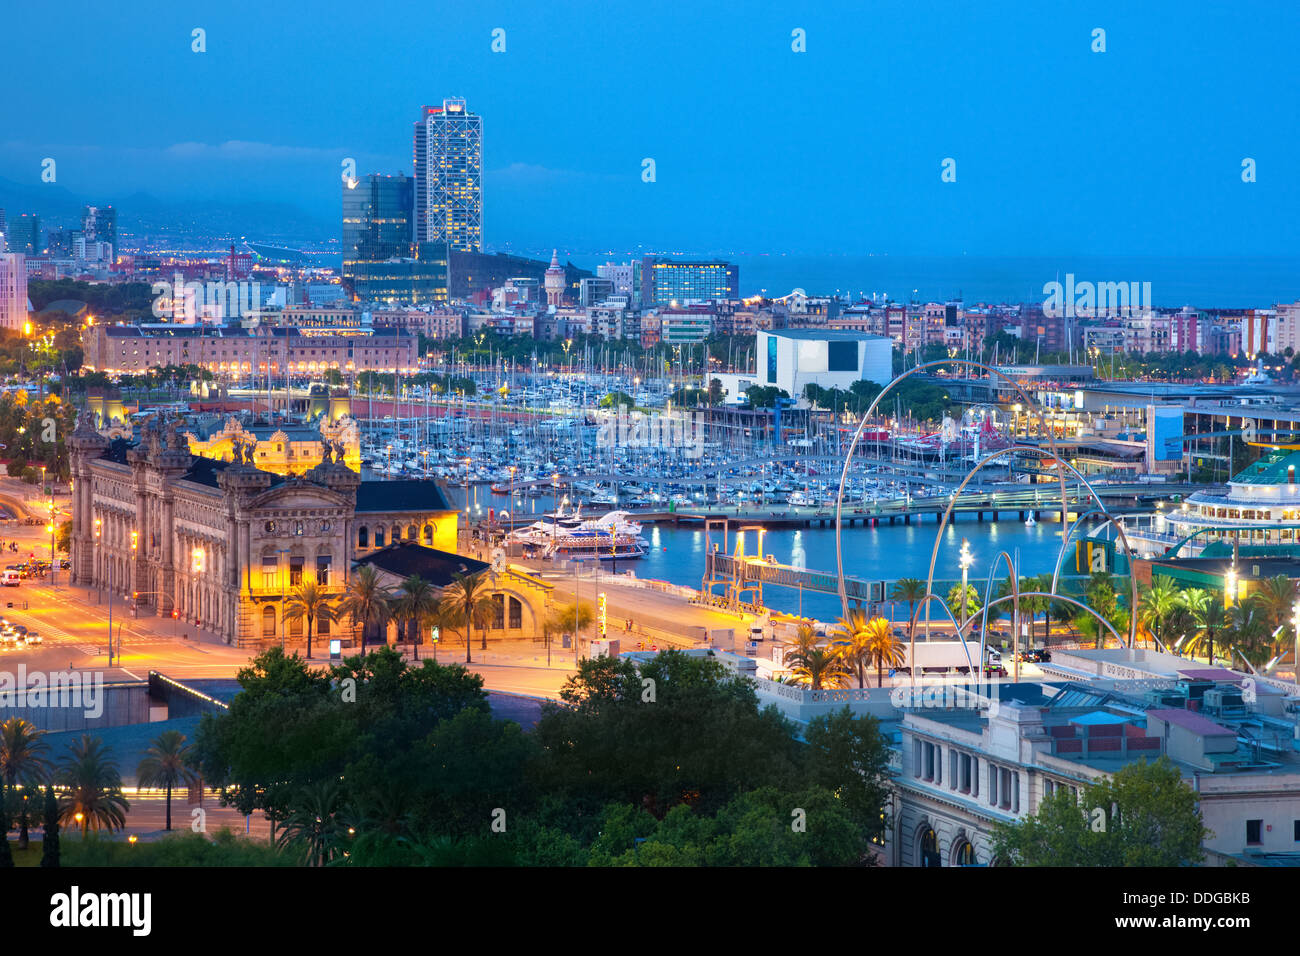 Barcelona, Spain skyline at night - Harbour view - Stock Image